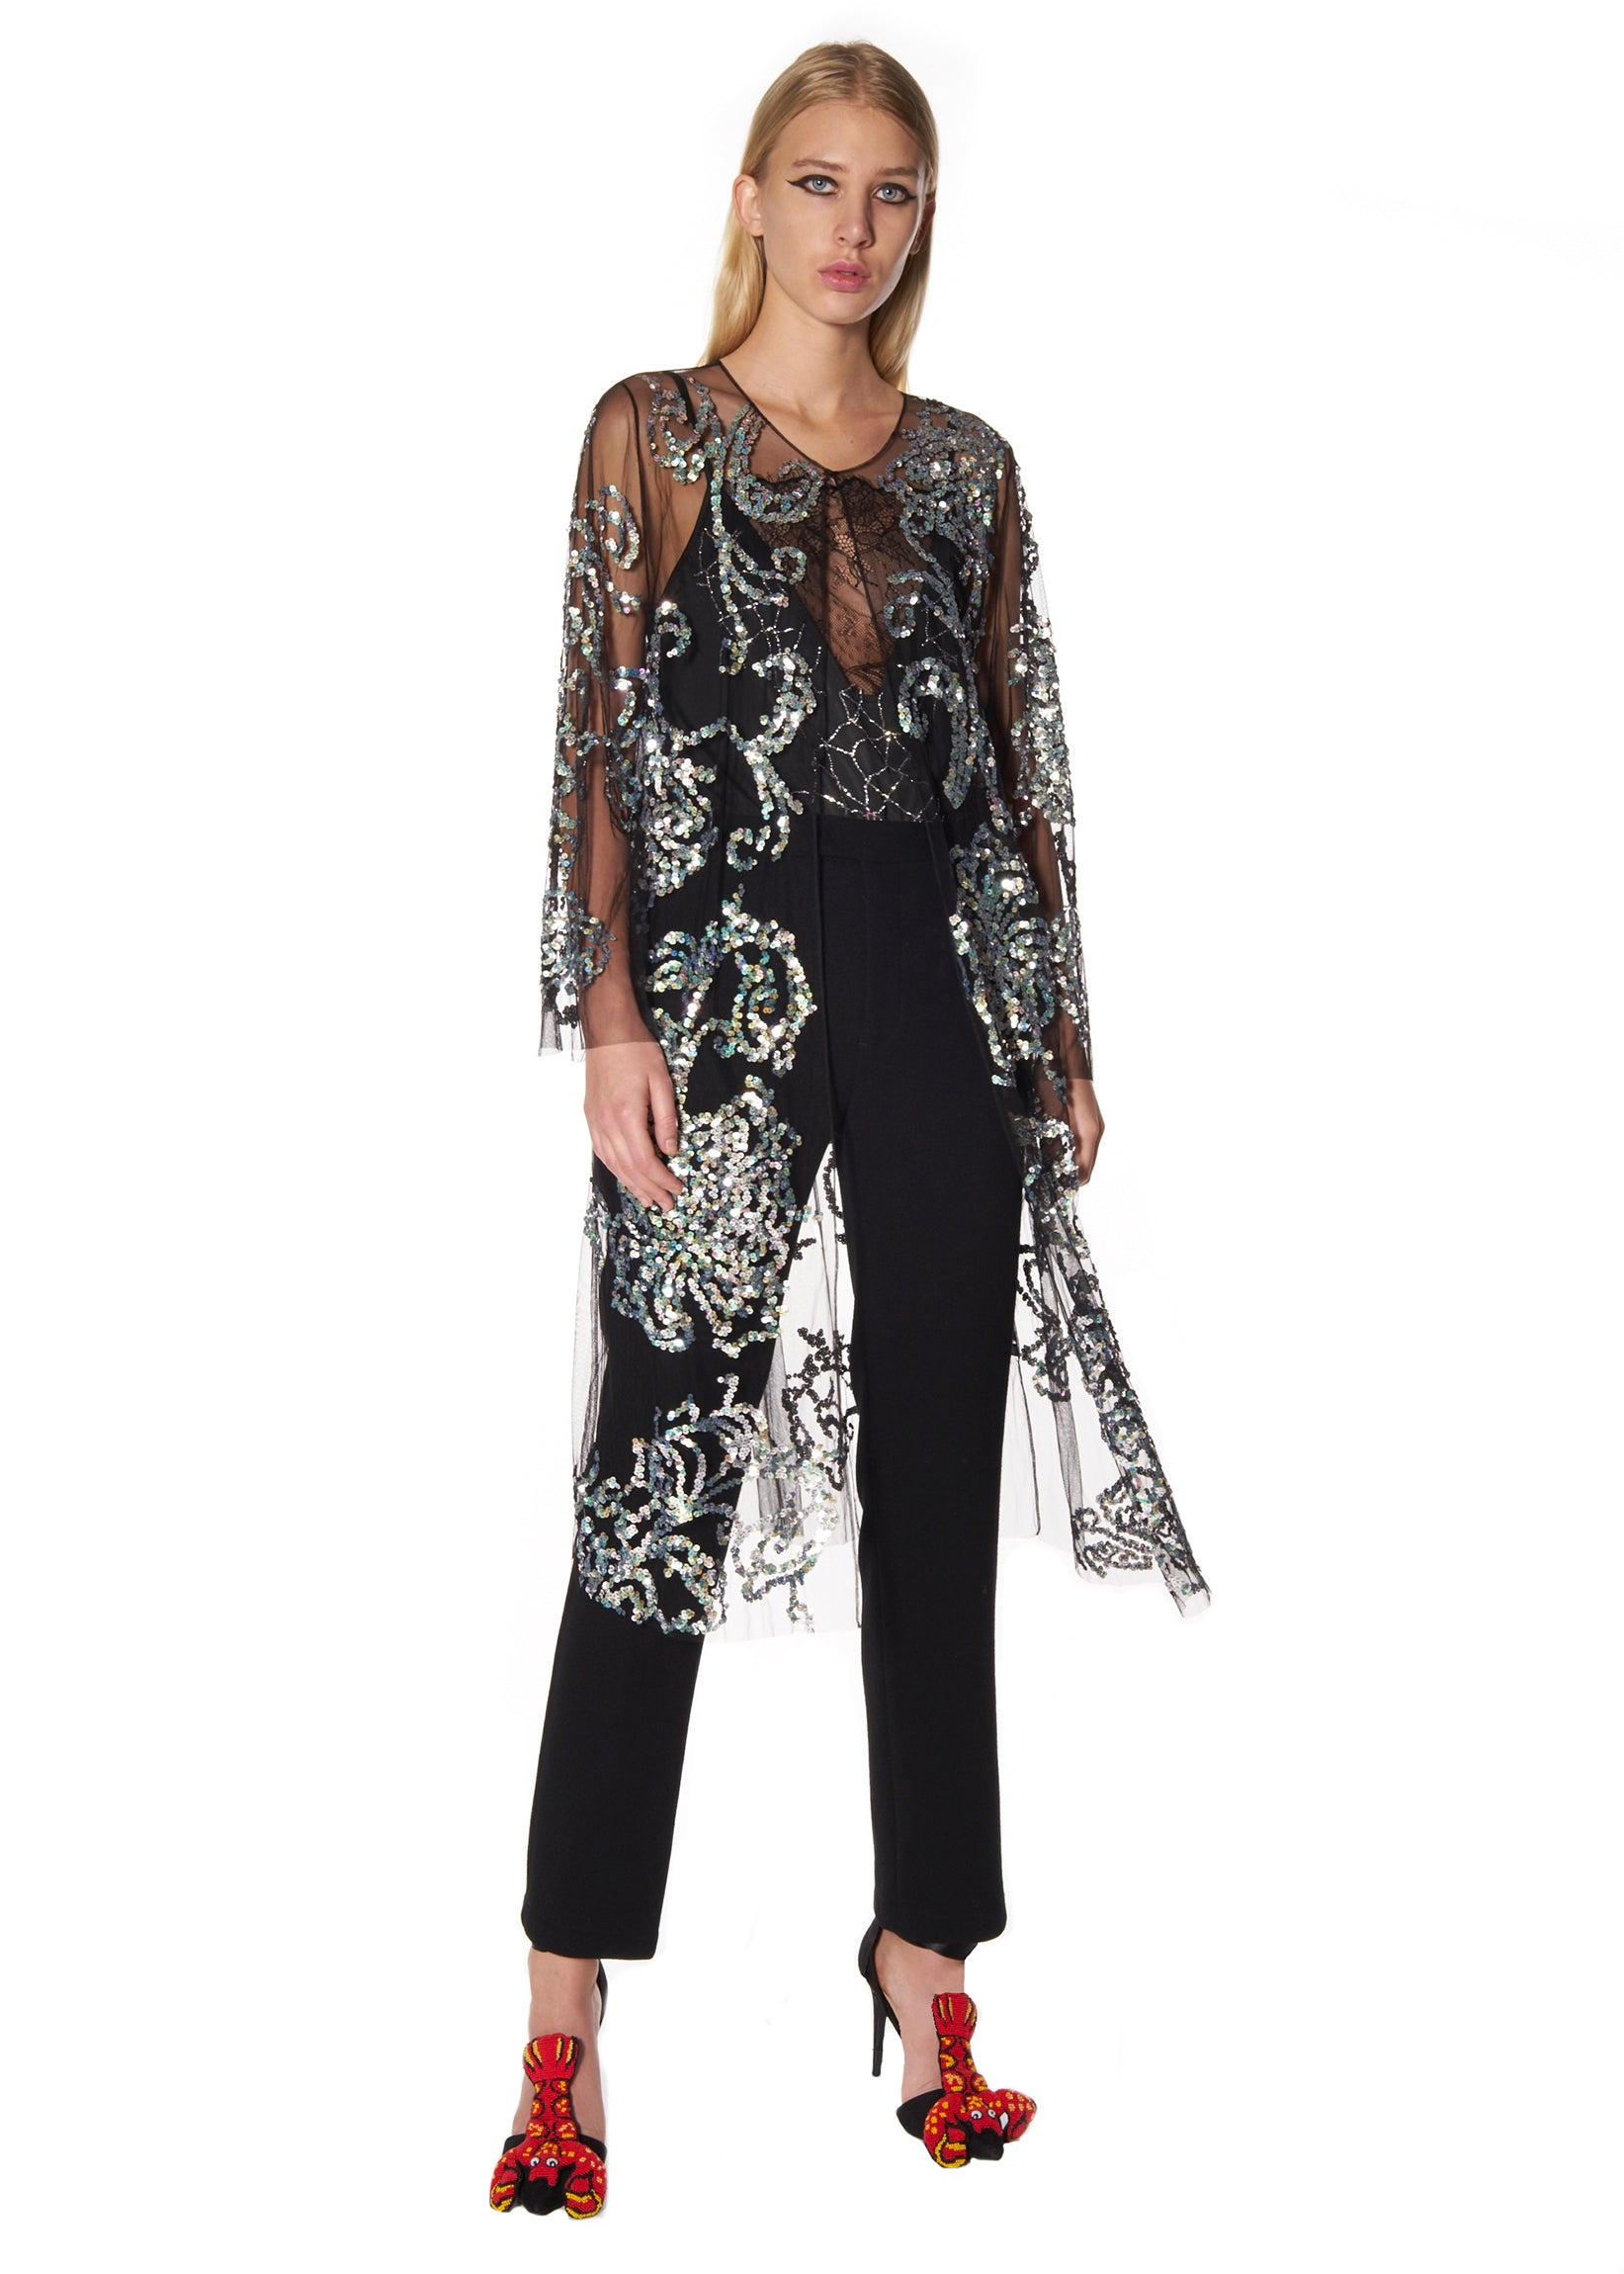 SILVER SEQUIN TULLE ROBE - Women's Jackets & Coats - Libertine